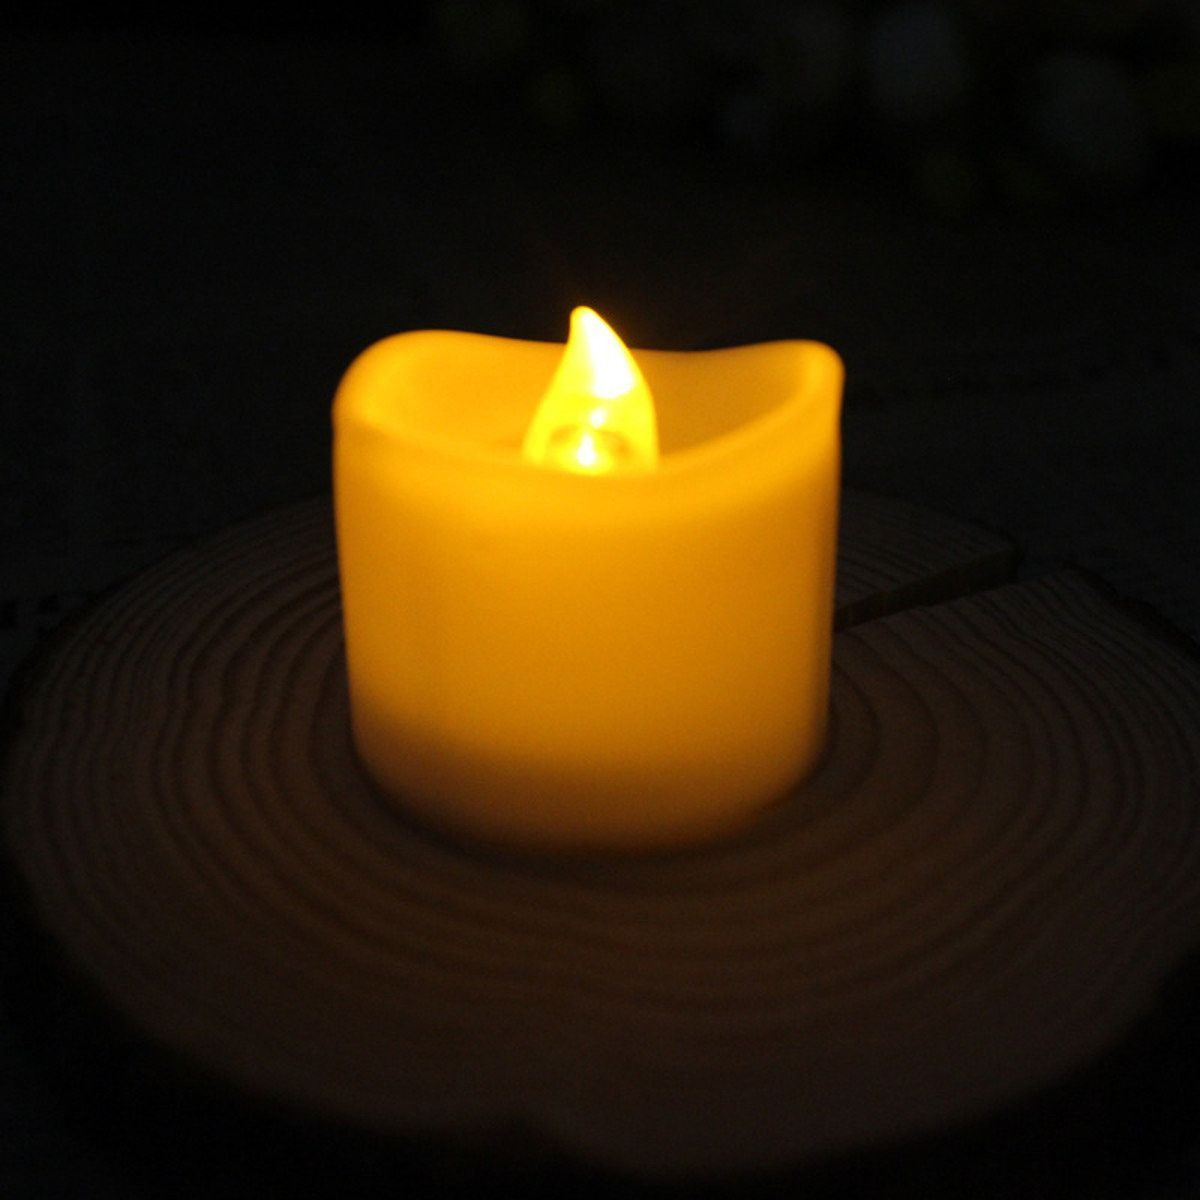 Pcs battery operated flameless votive flickering led candles tea